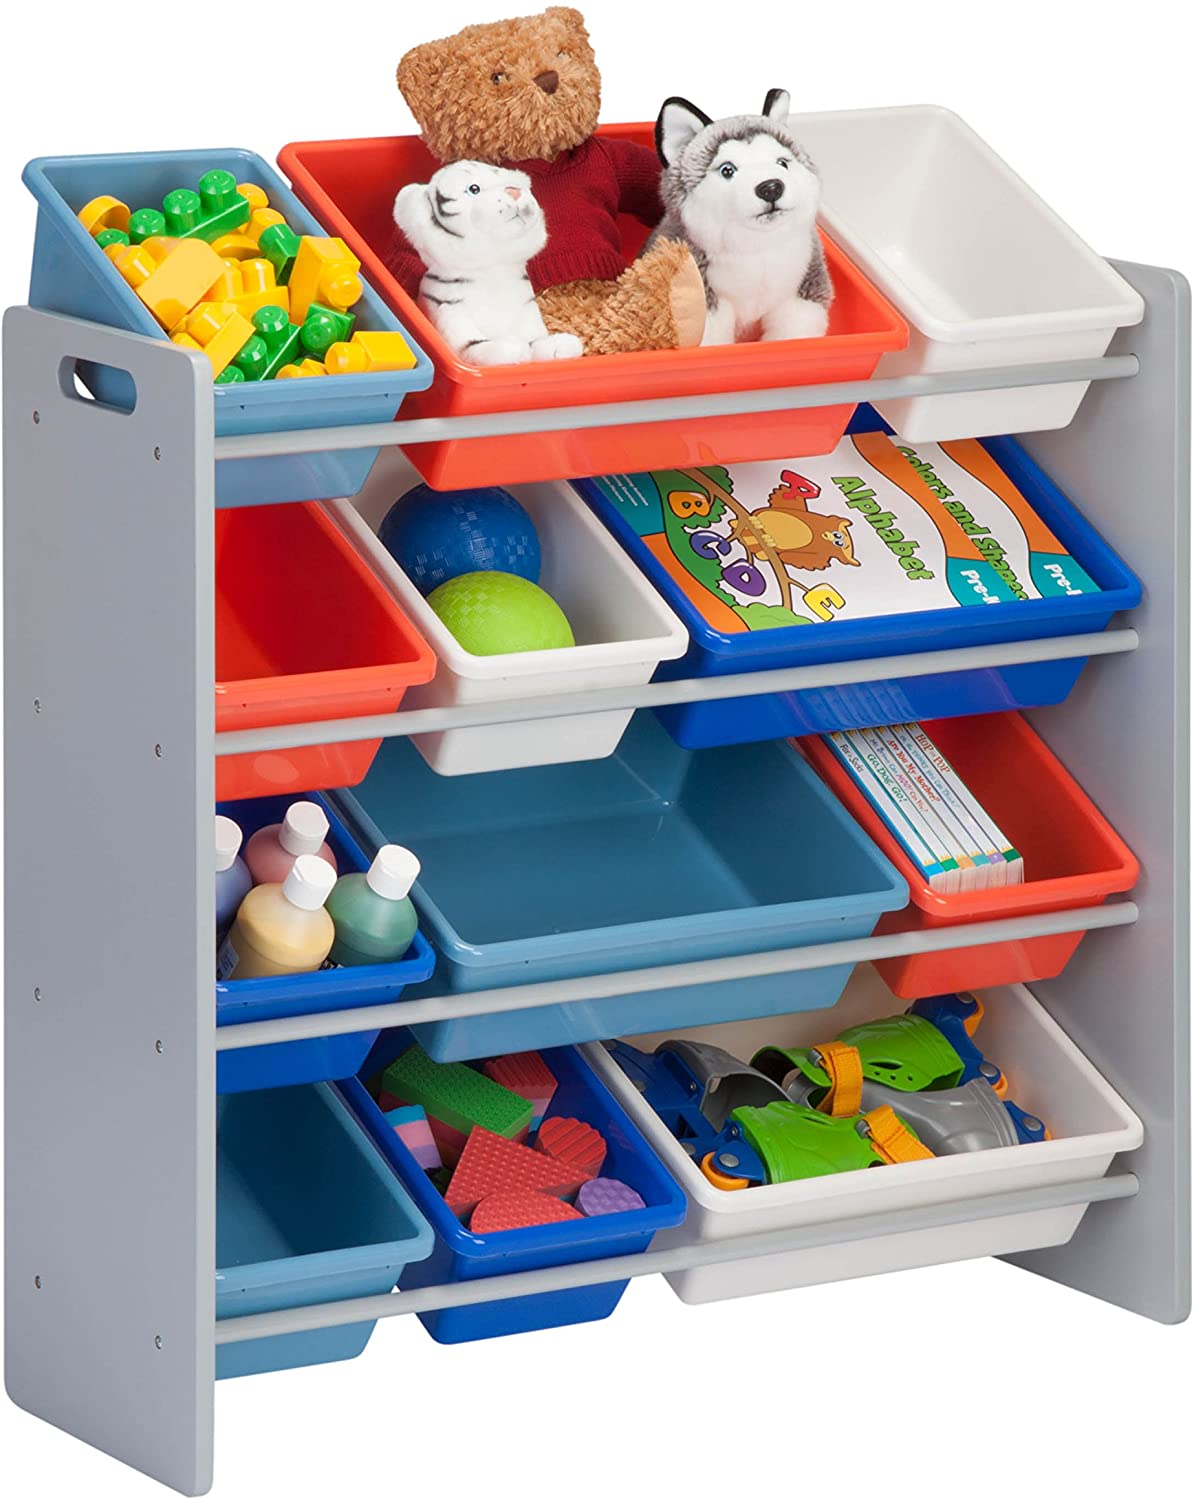 Honey-Can-Do Toy Storages